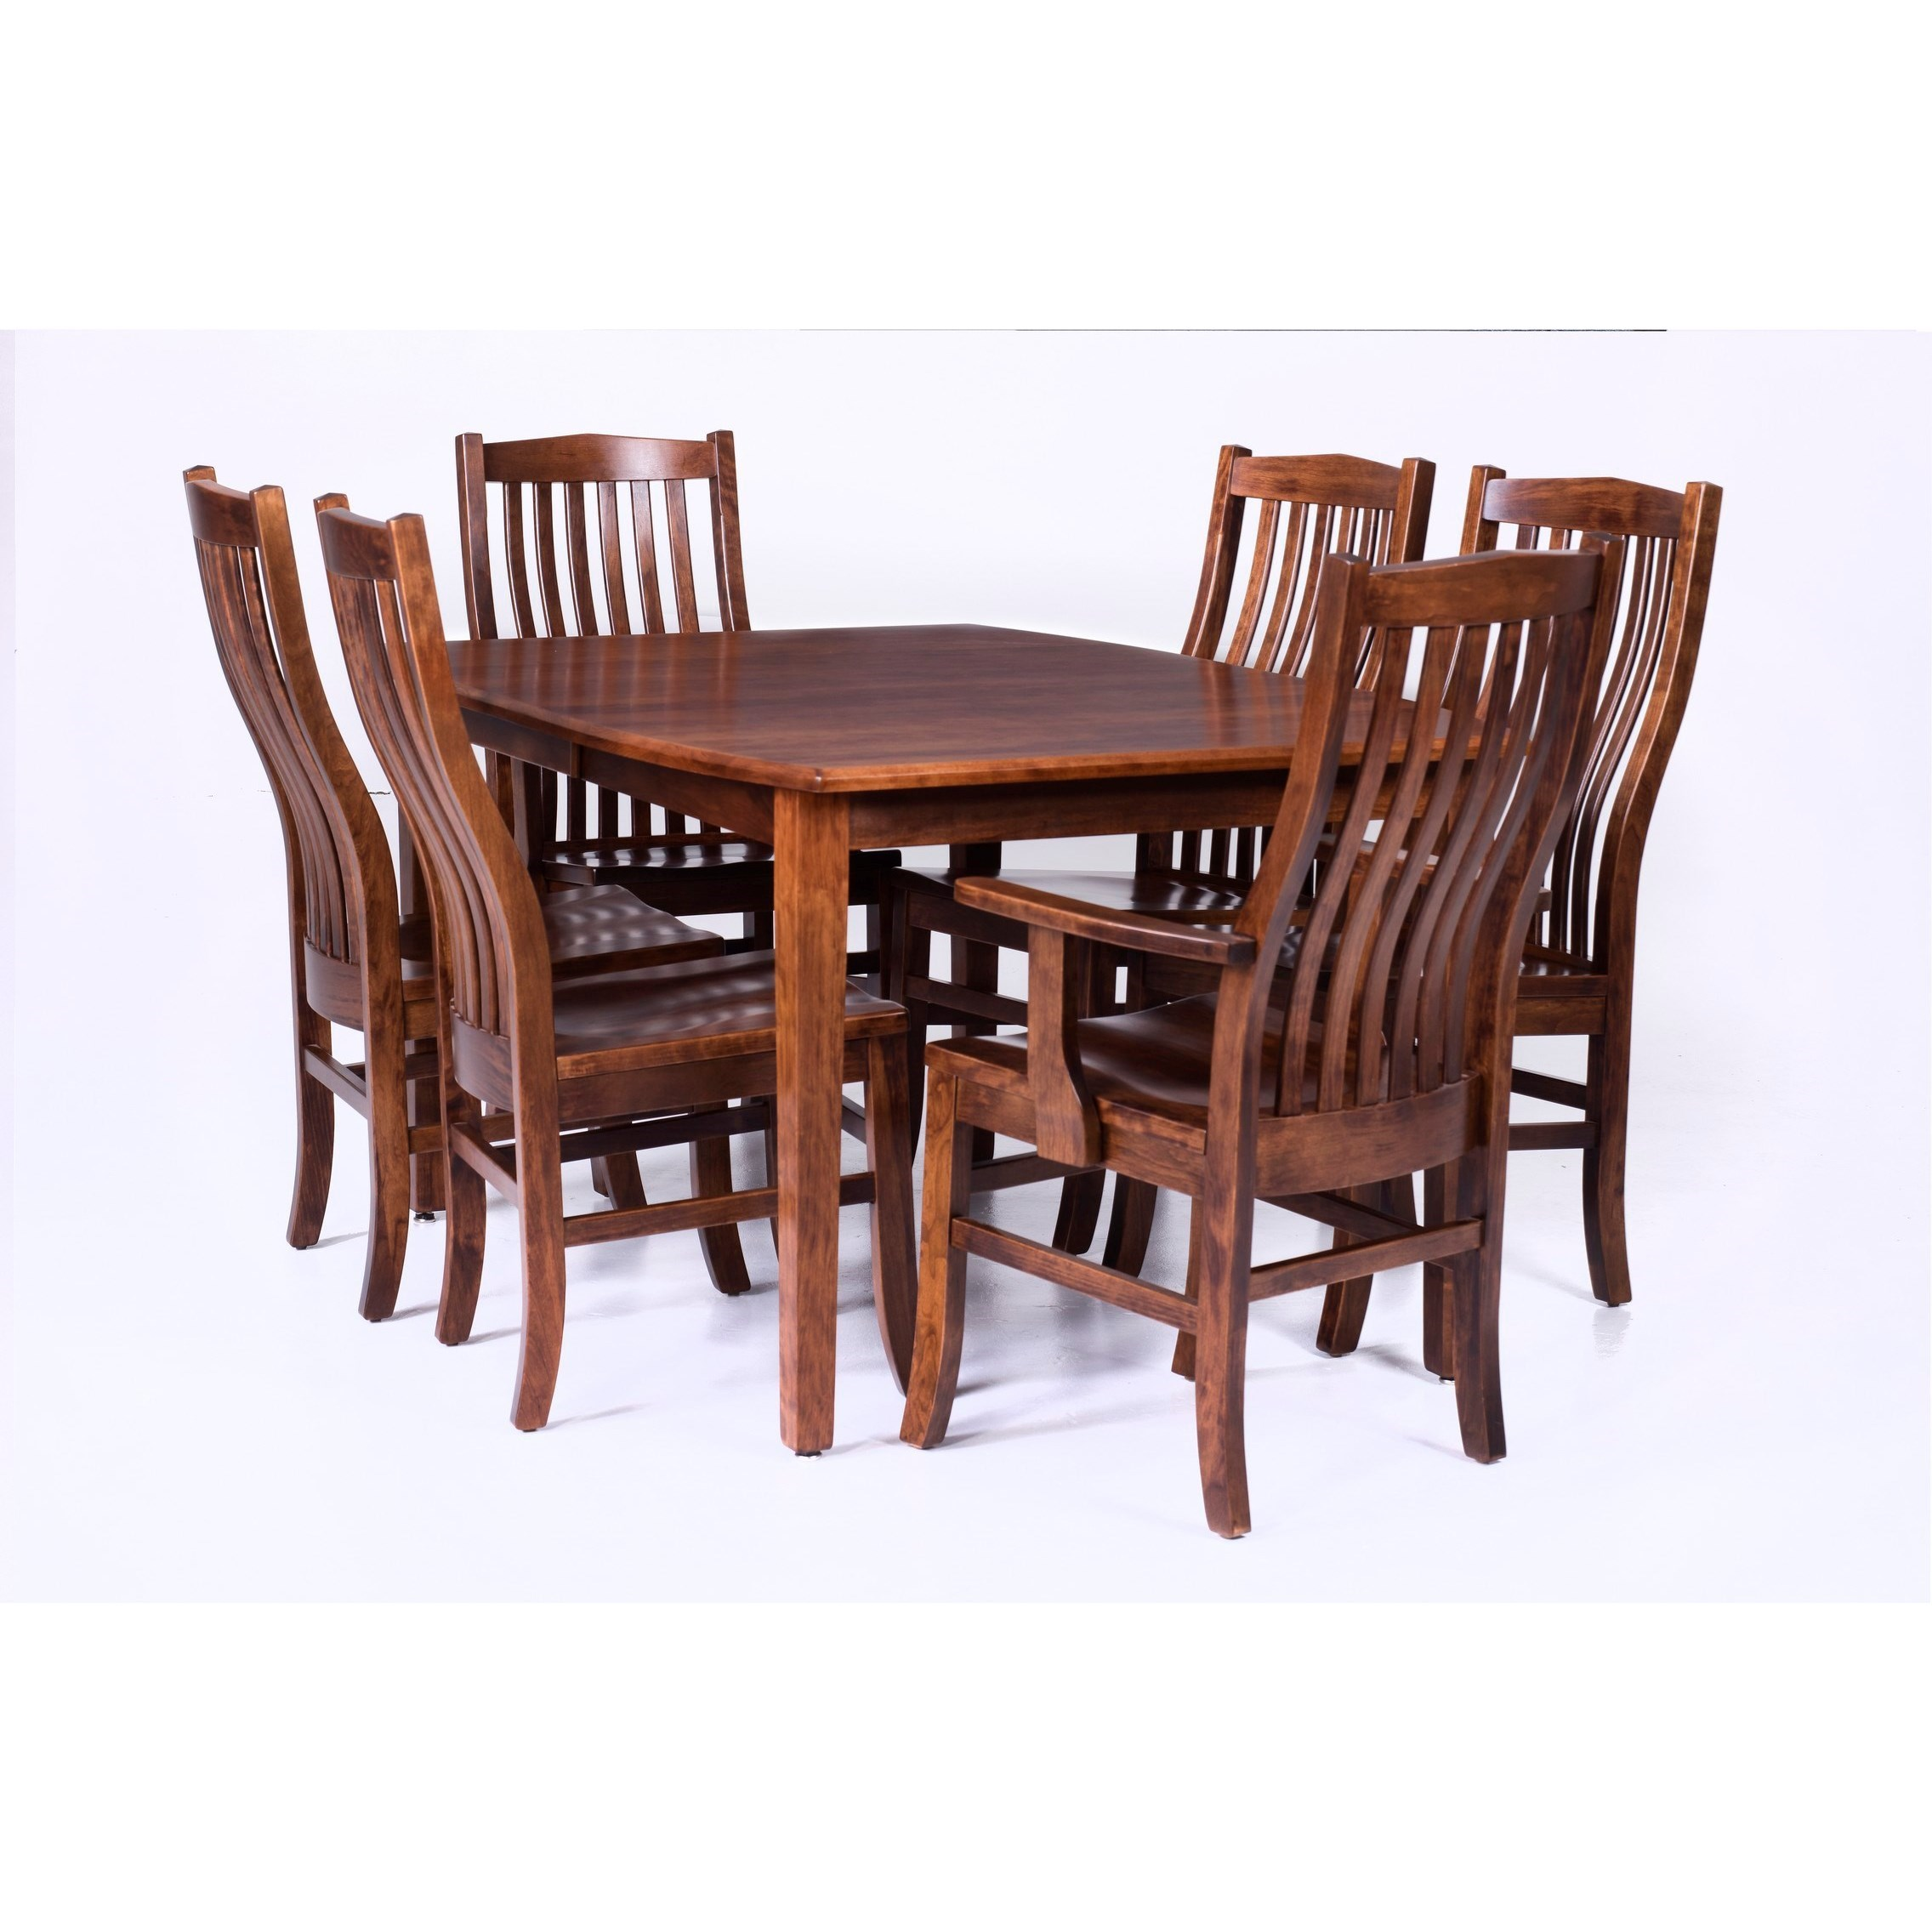 Palettes Prestige Customizable 7 Piece Table And Chair Set Virginia Furniture Market Dining 7 Or More Piece Sets